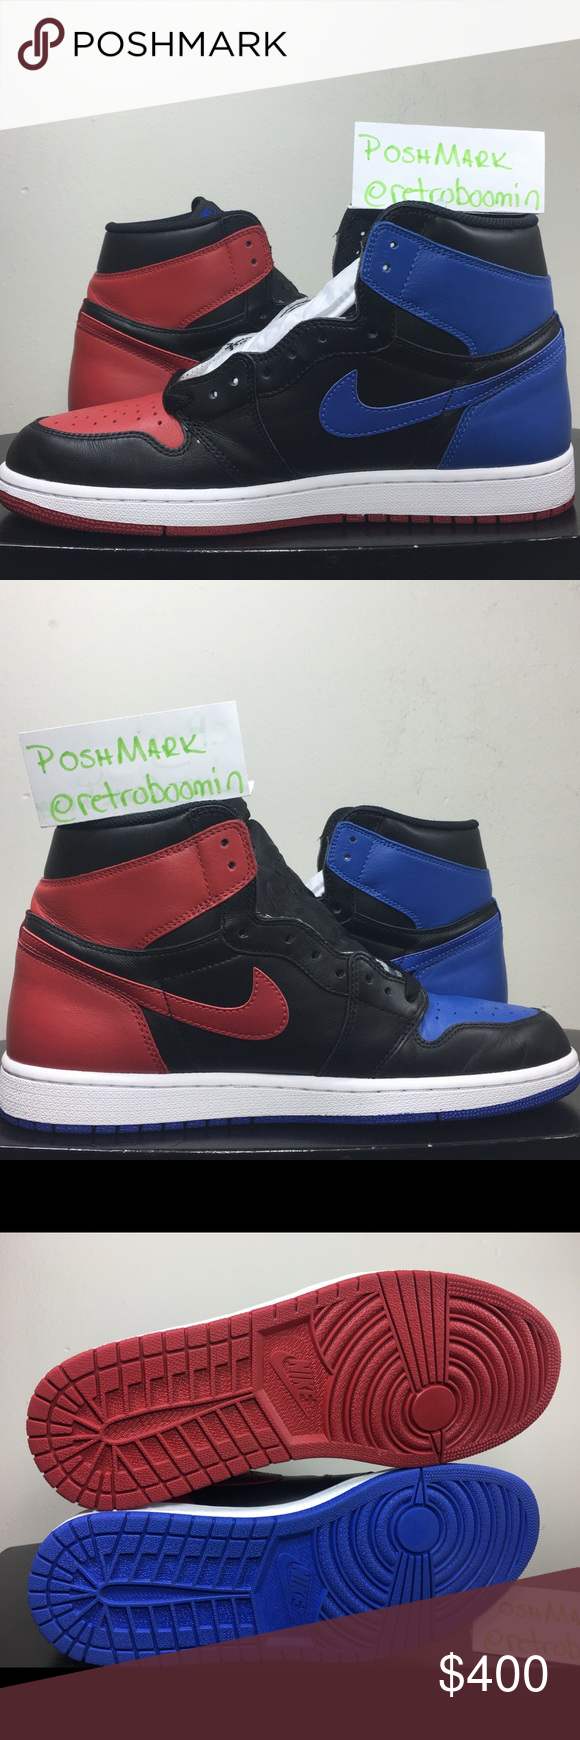 aef0e883ea8d Nike Air Jordan 1 Retro OG High Top 3   SEE SECOND LISTING FOR ADDITIONAL